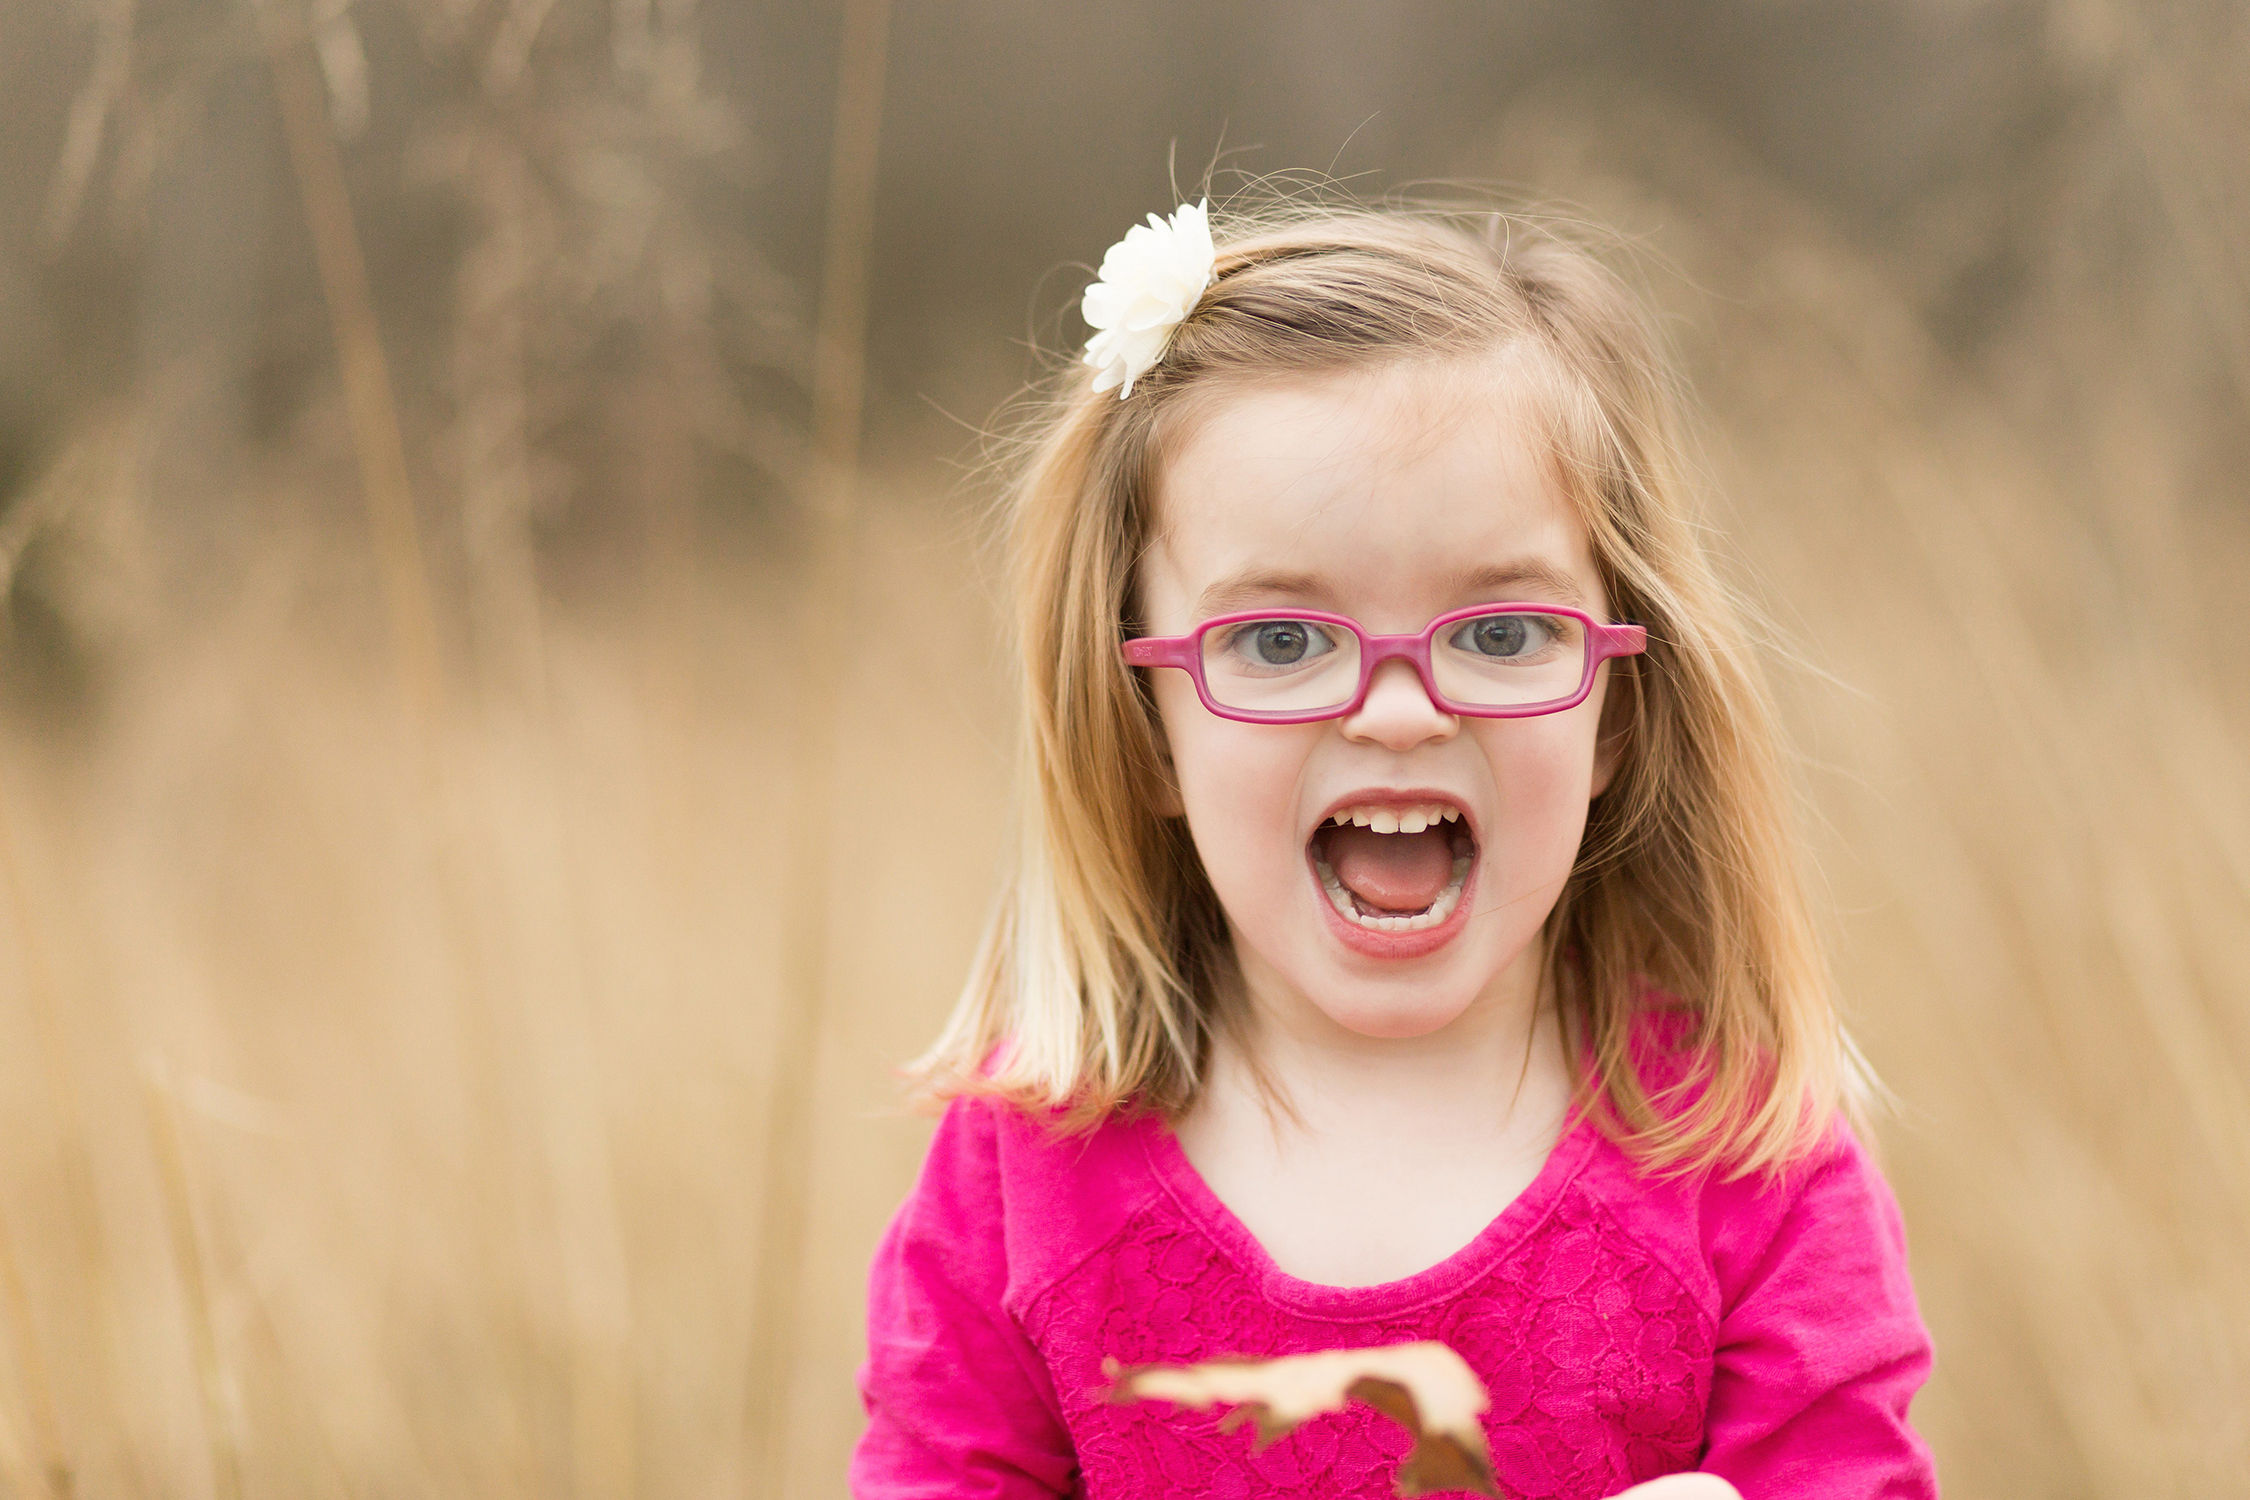 Young girl wearing pink glasses with her mouth open | St. Louis Children's Photography